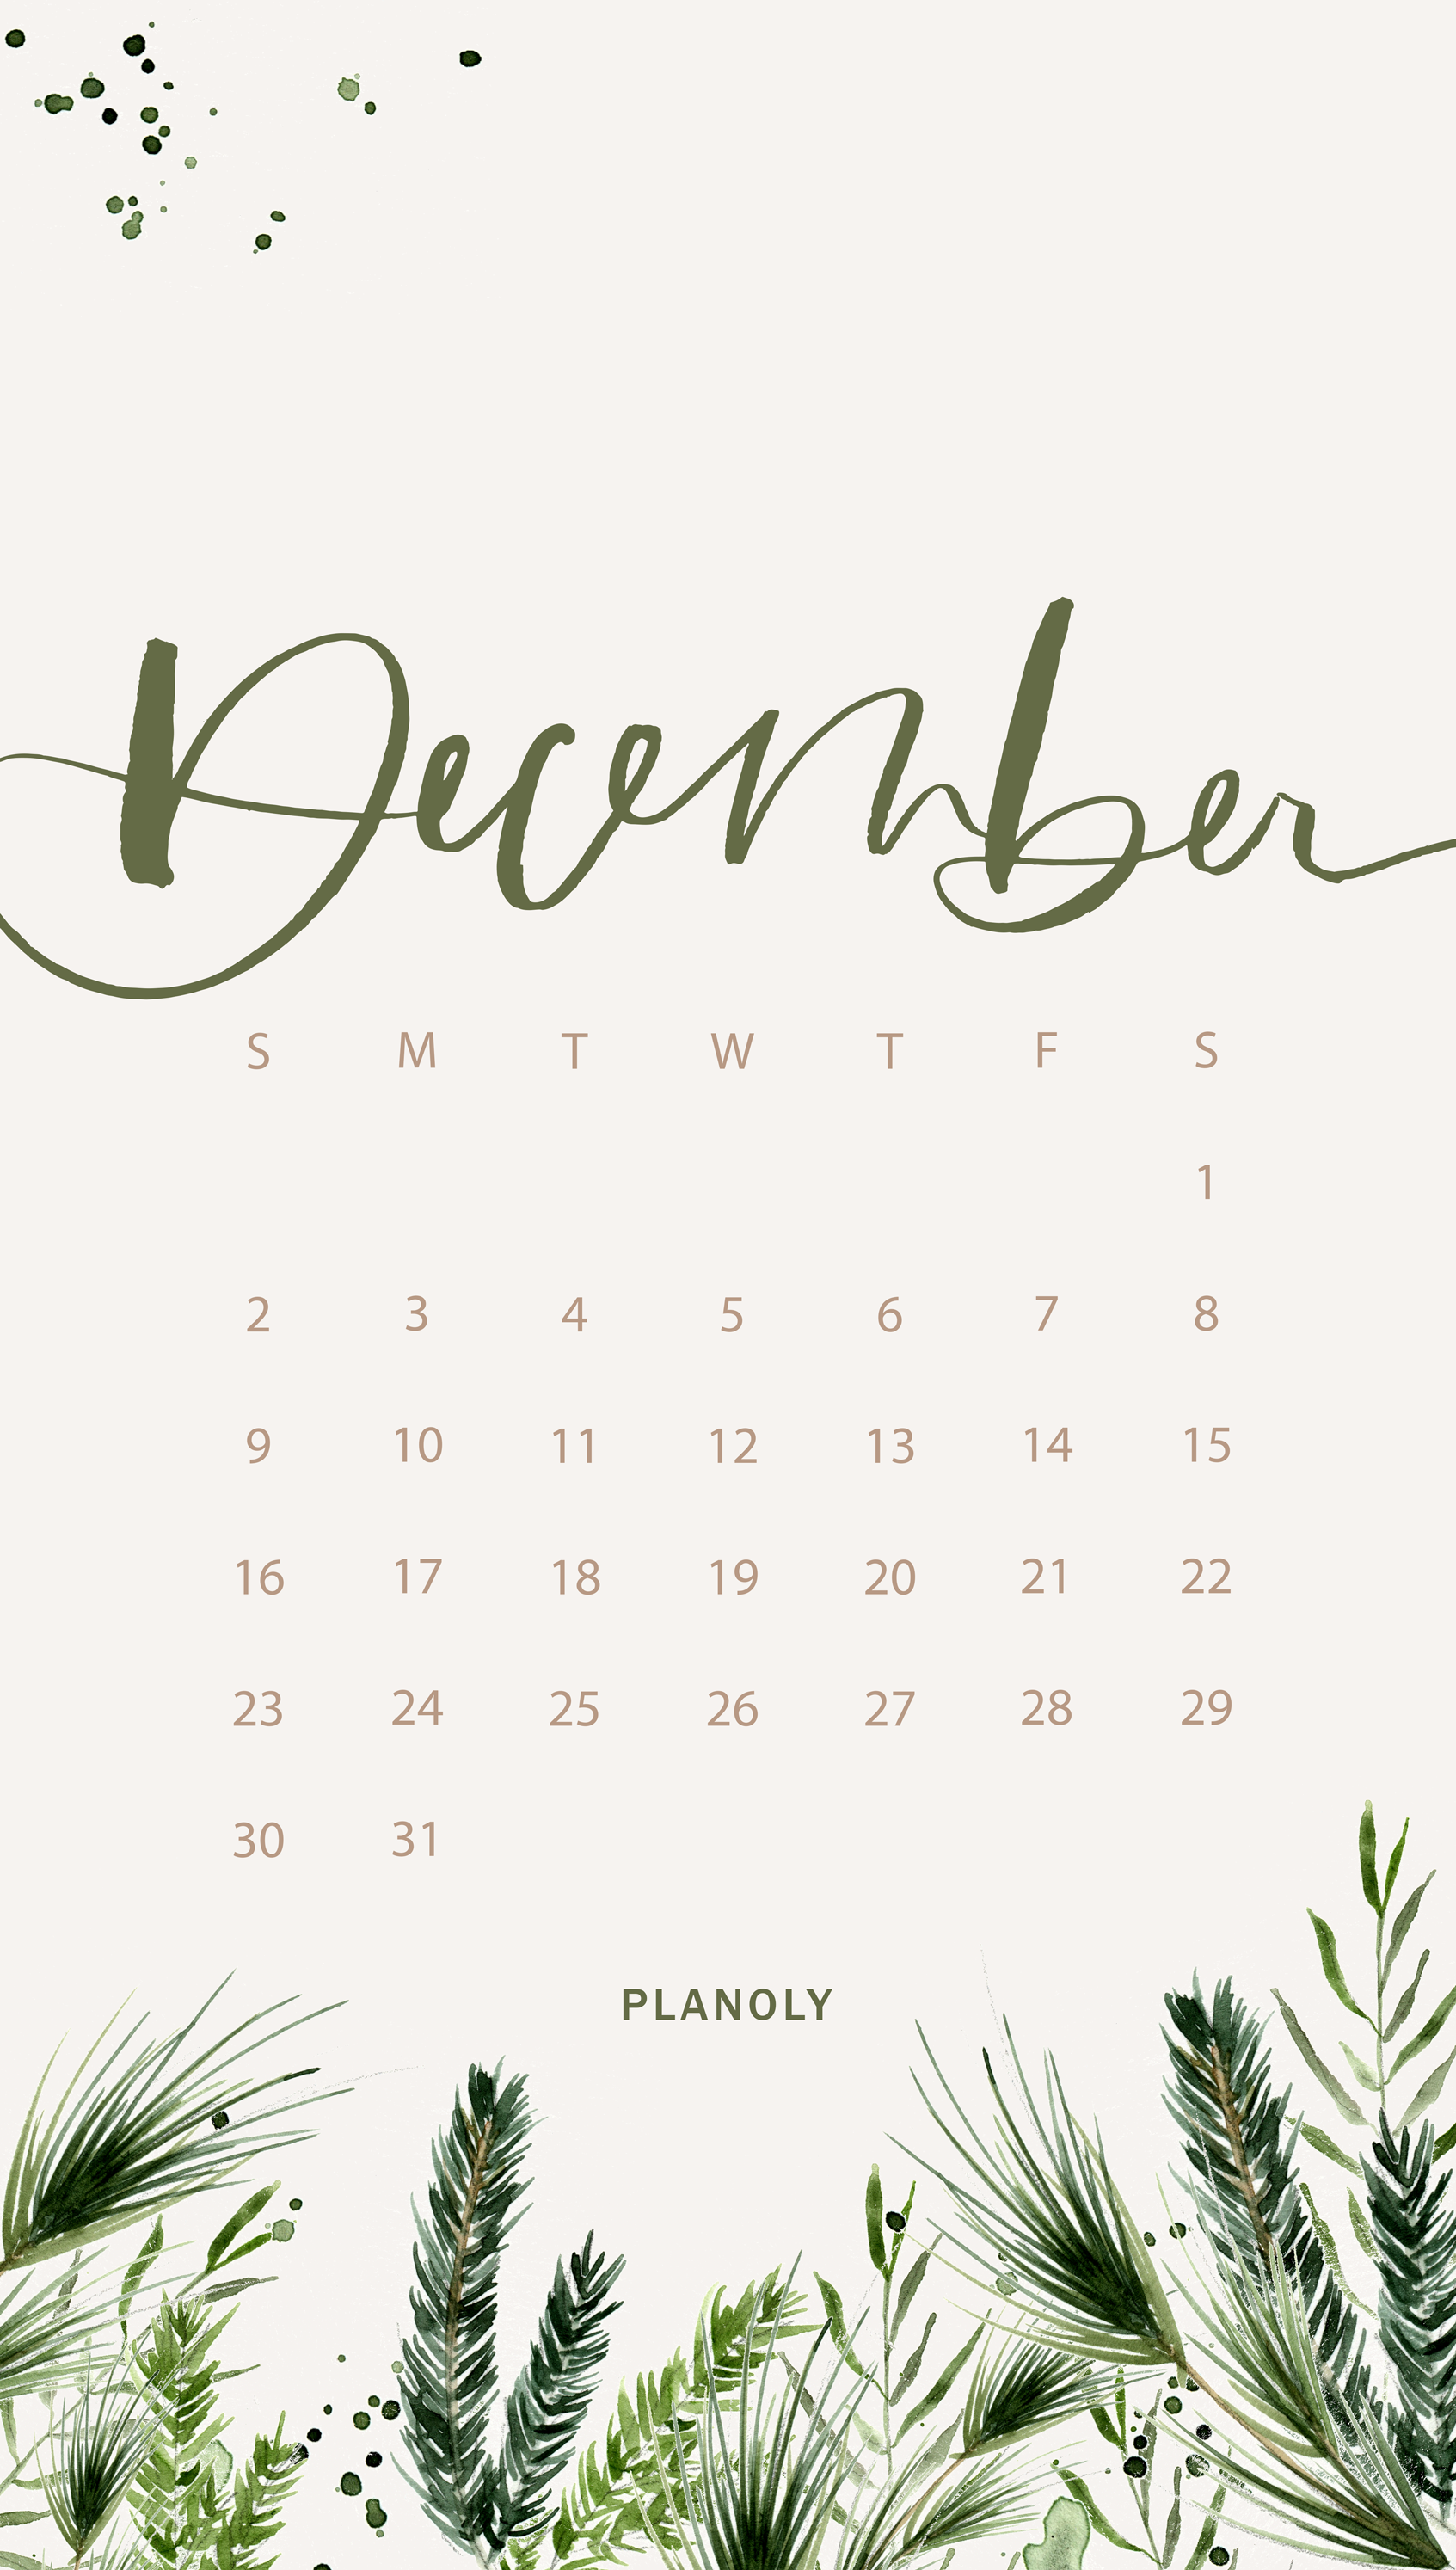 December 2019 Calendar Wallpaper Desktop December 2018 Content Calendar   Planoly